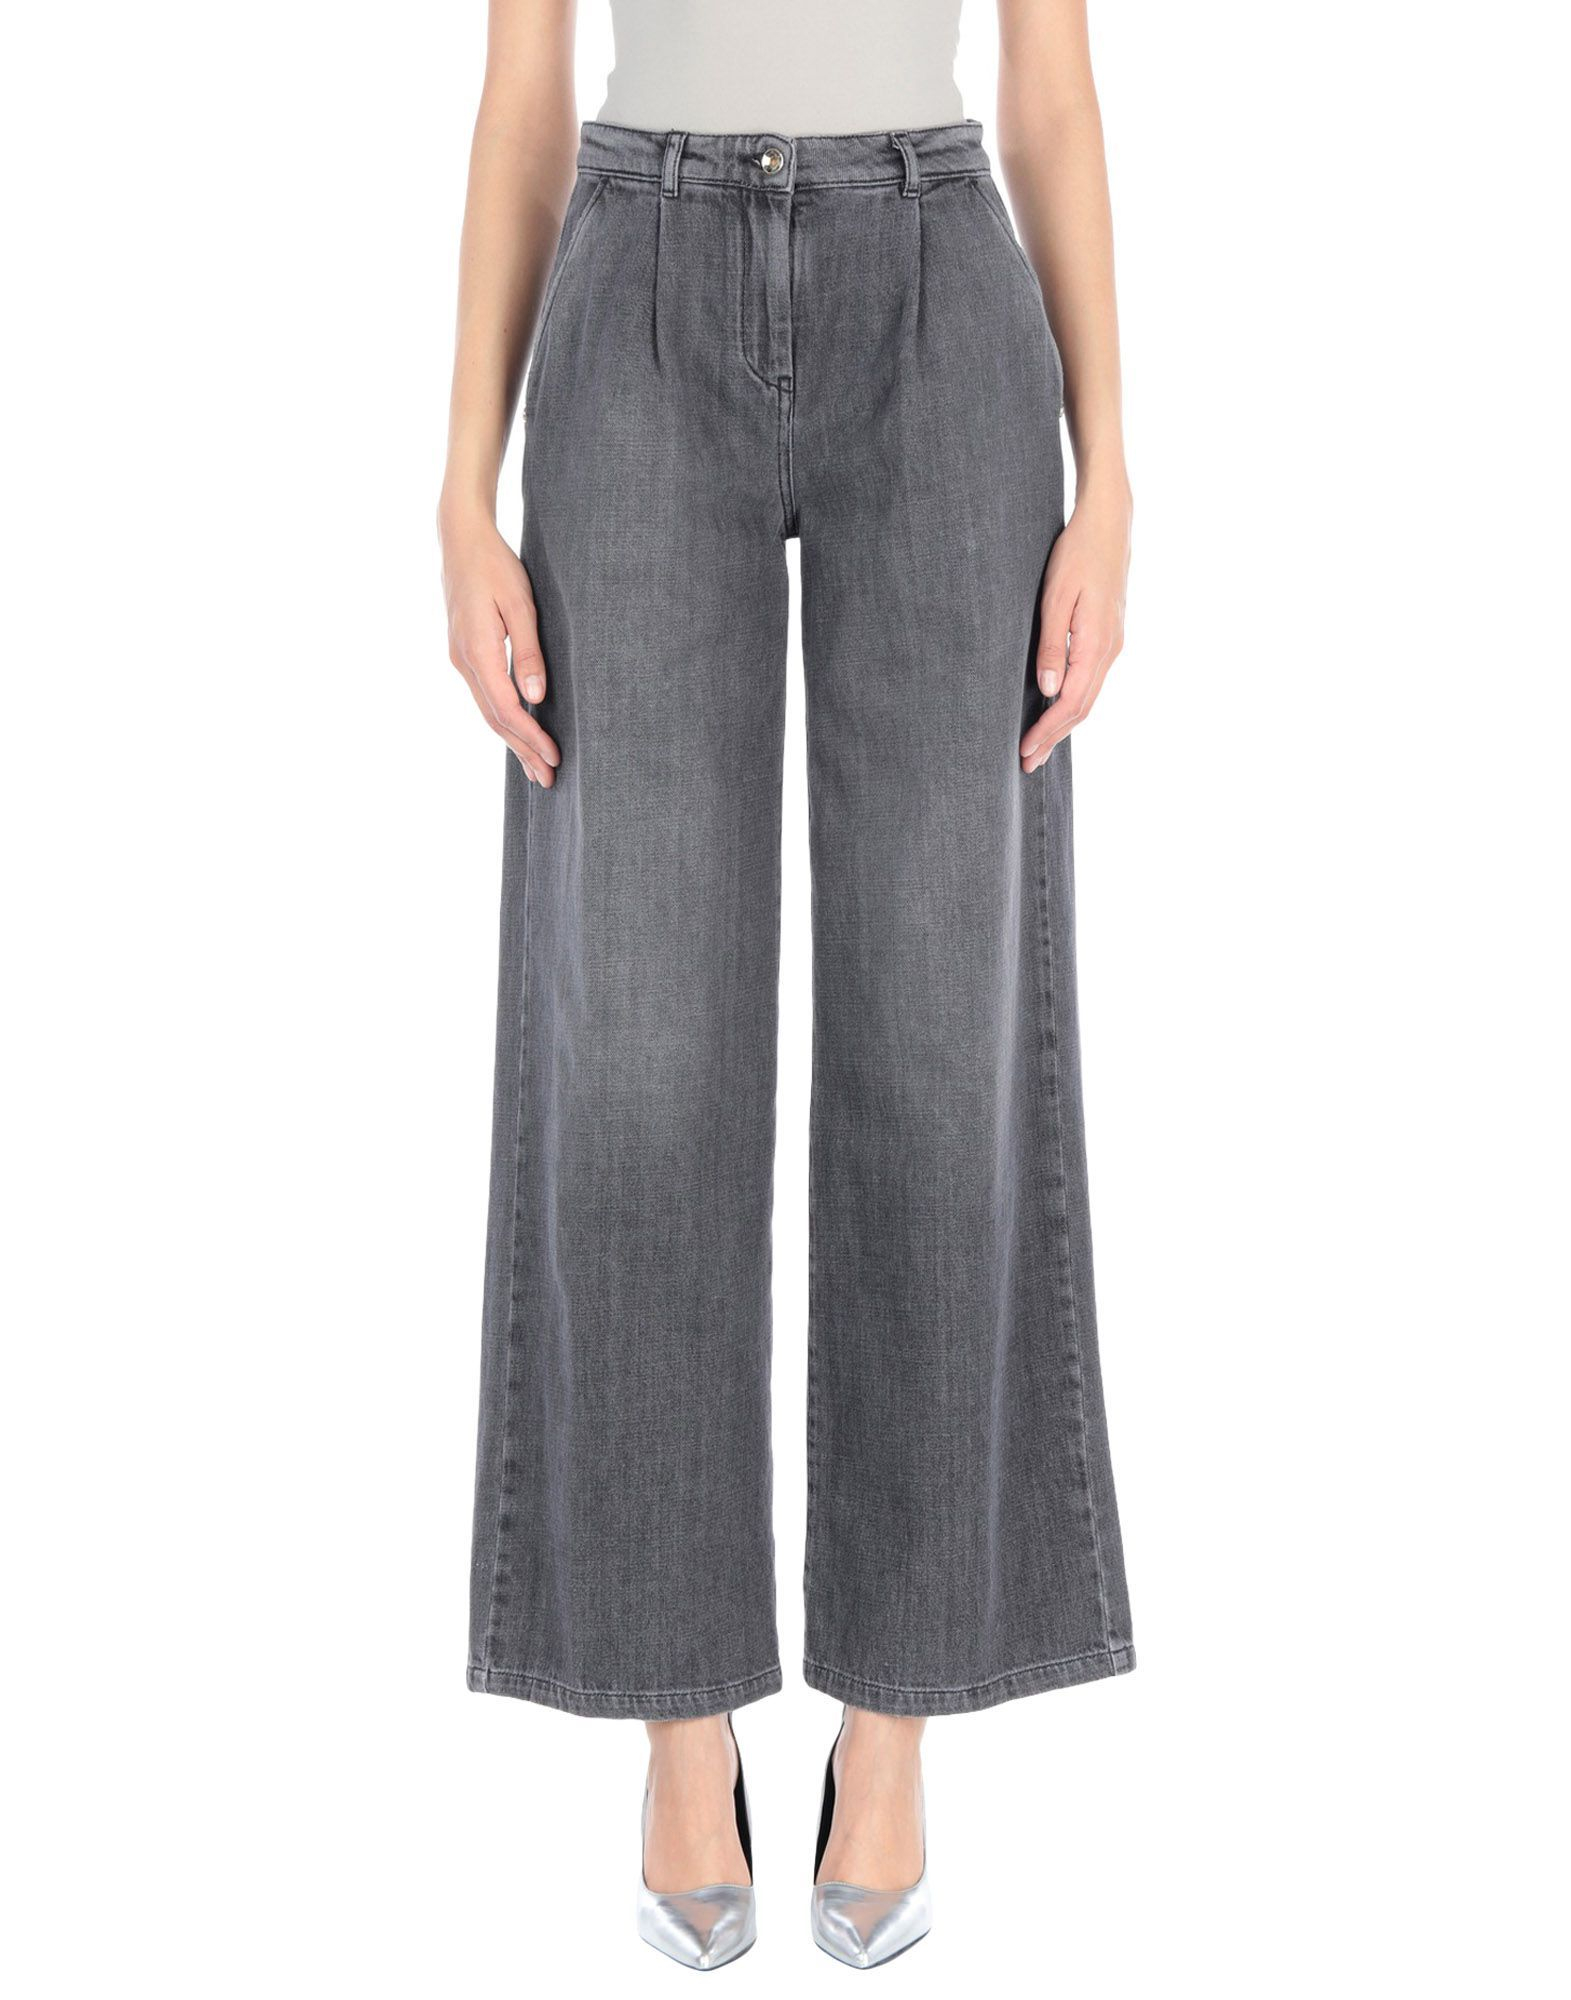 Patrizia Pepe Lead Cotton Wide Leg Jeans